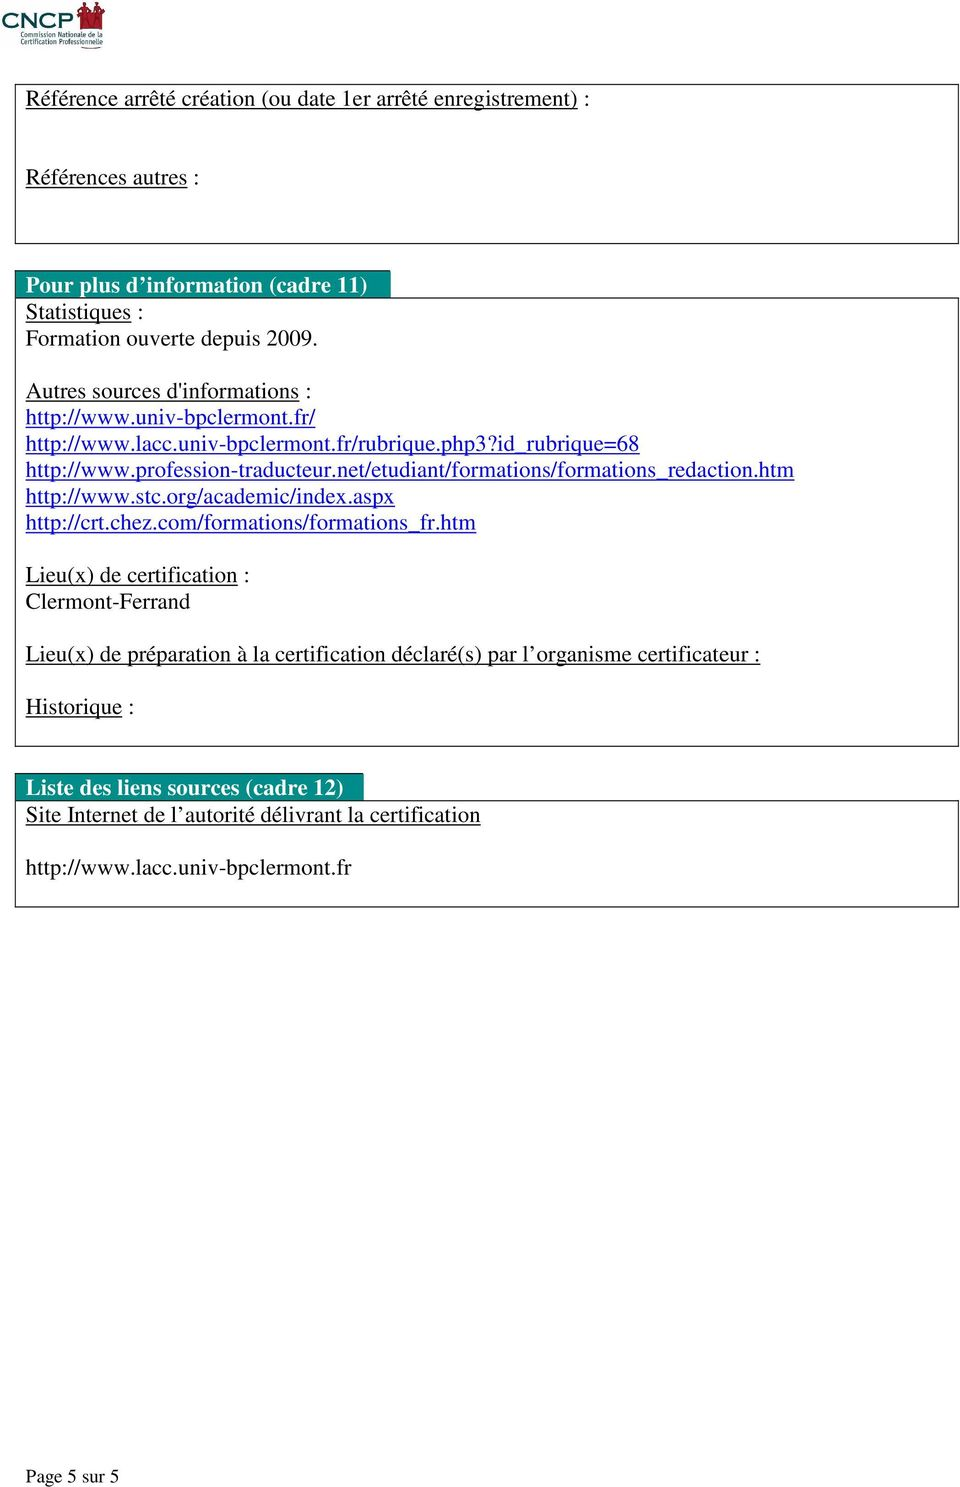 net/etudiant/formations/formations_redaction.htm http://www.stc.org/academic/index.aspx http://crt.chez.com/formations/formations_fr.